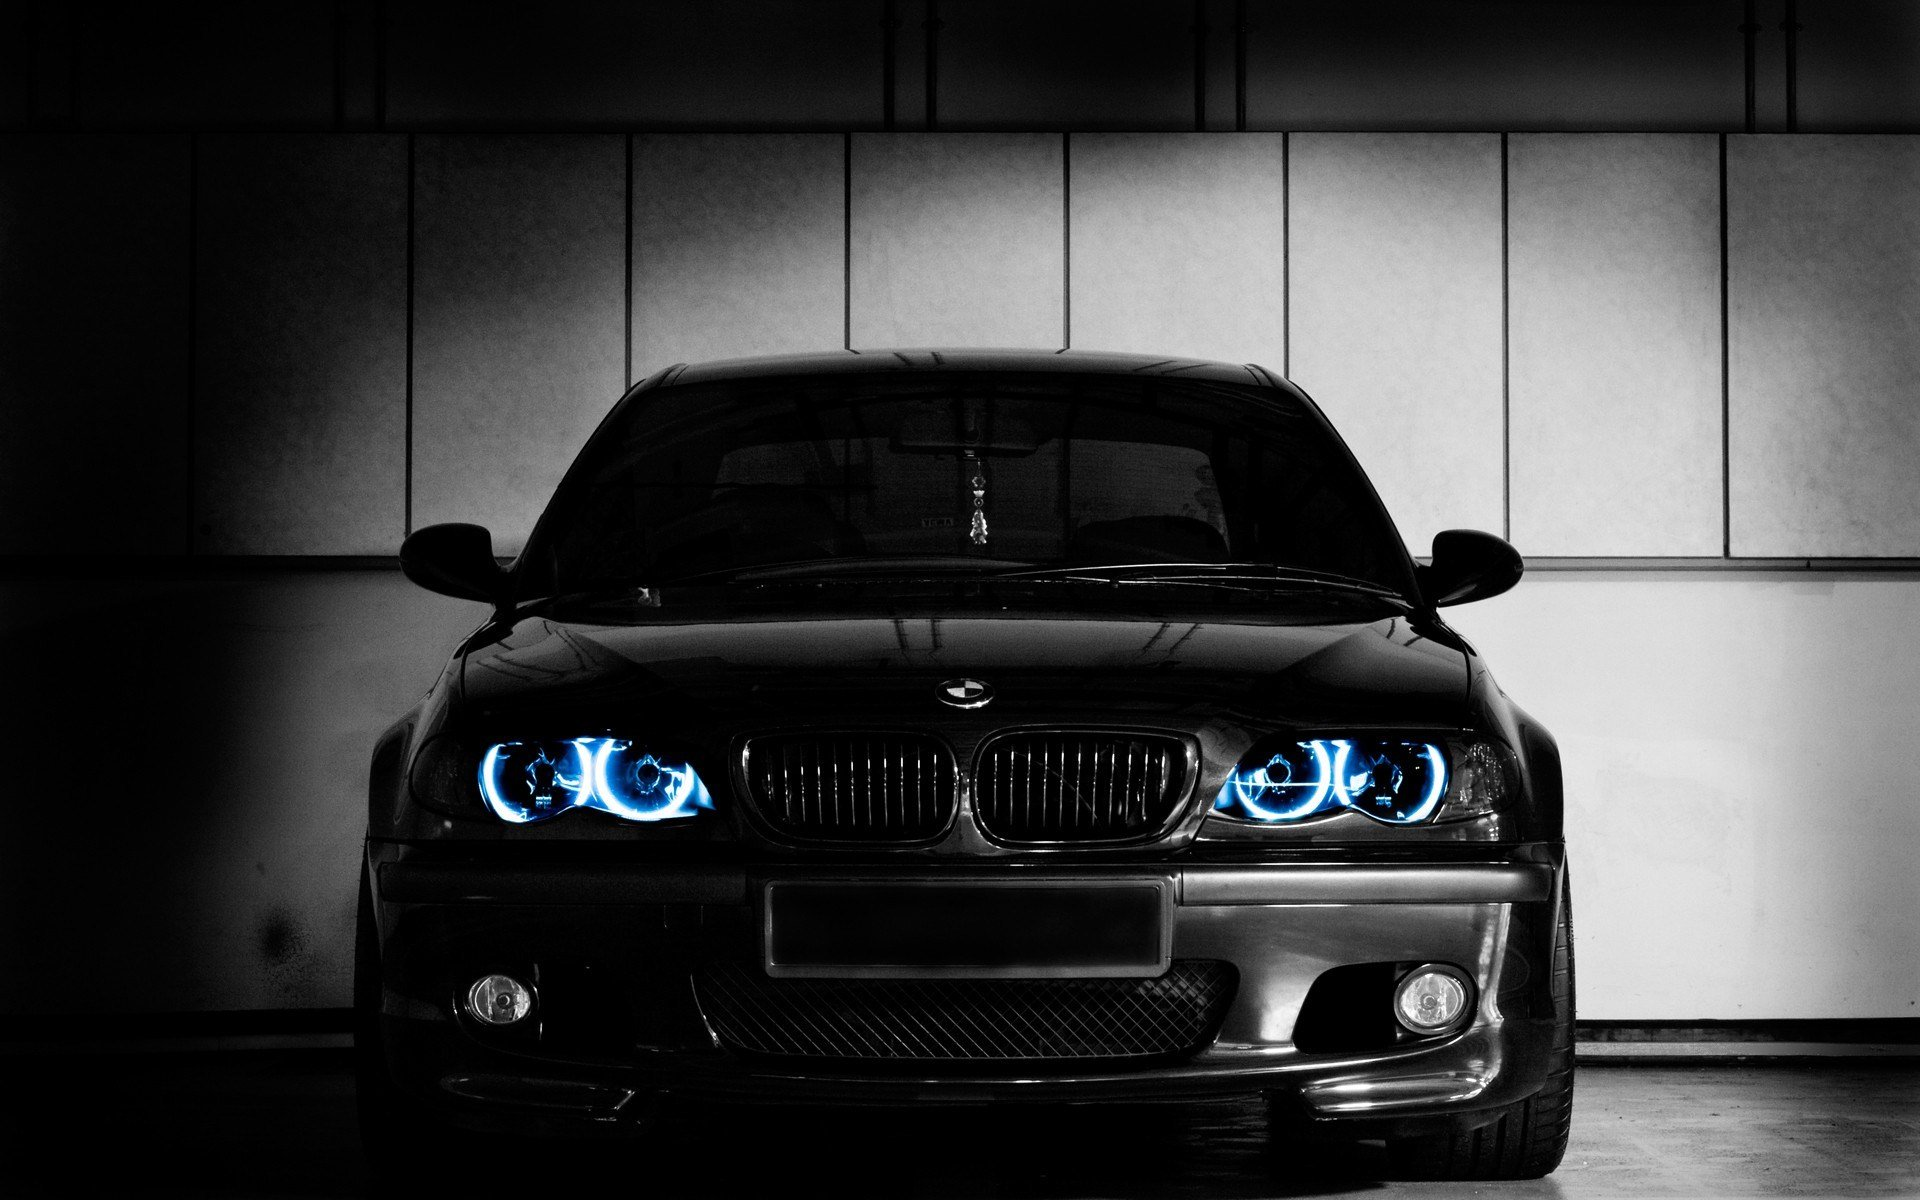 Latest Bmw Cars Vehicles Bmw E46 Black Cars Wallpaper 1920X1200 Free Download